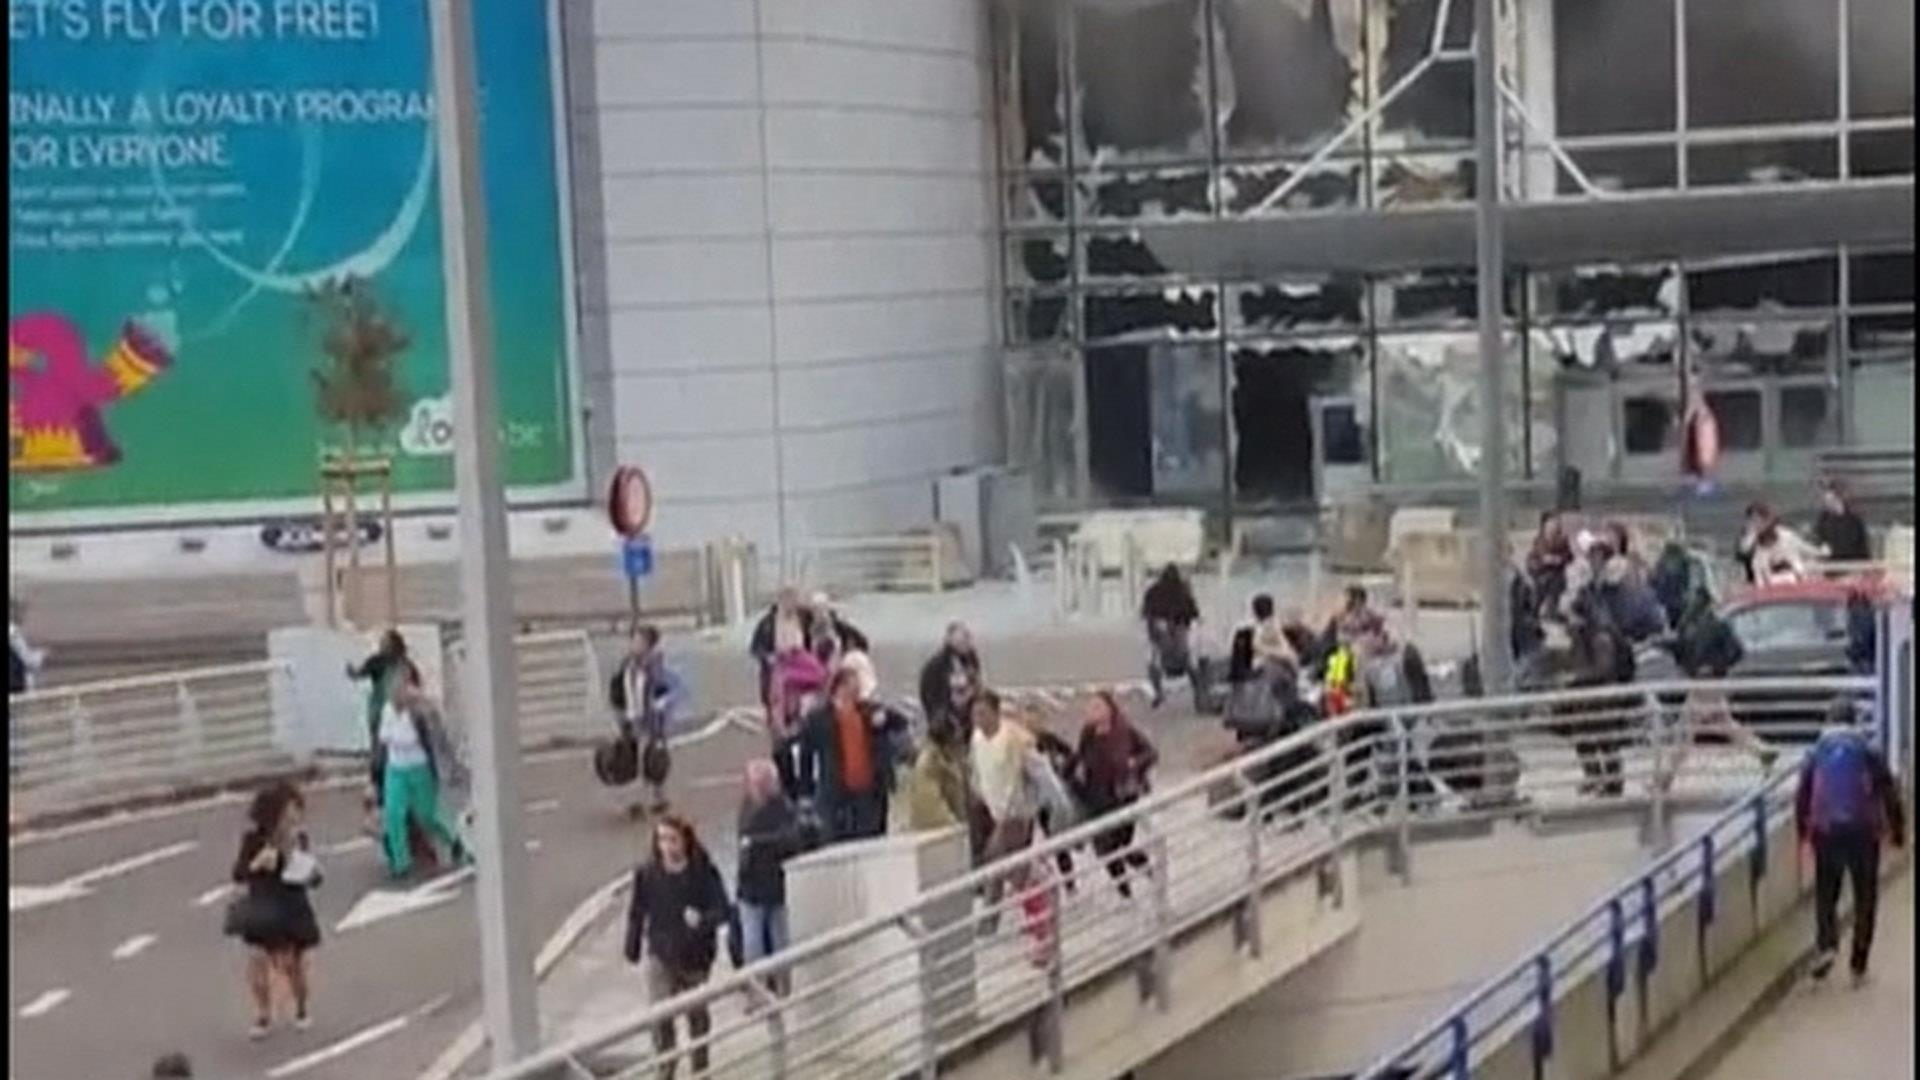 Chaos At Brussels Airport After Blasts